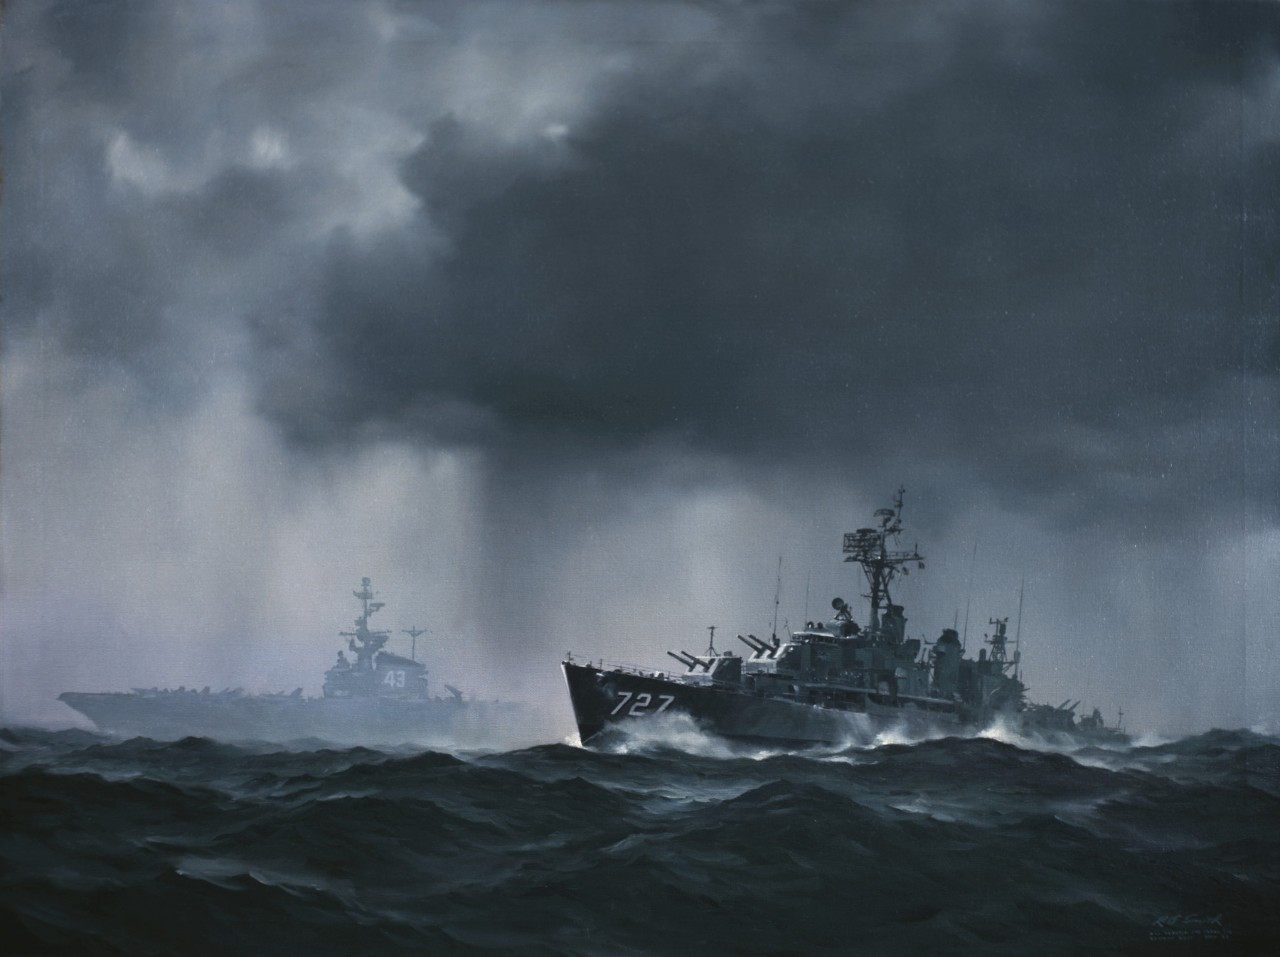 An aircraft carrier is in the background in a rainstorm with a destroyer in the foreground